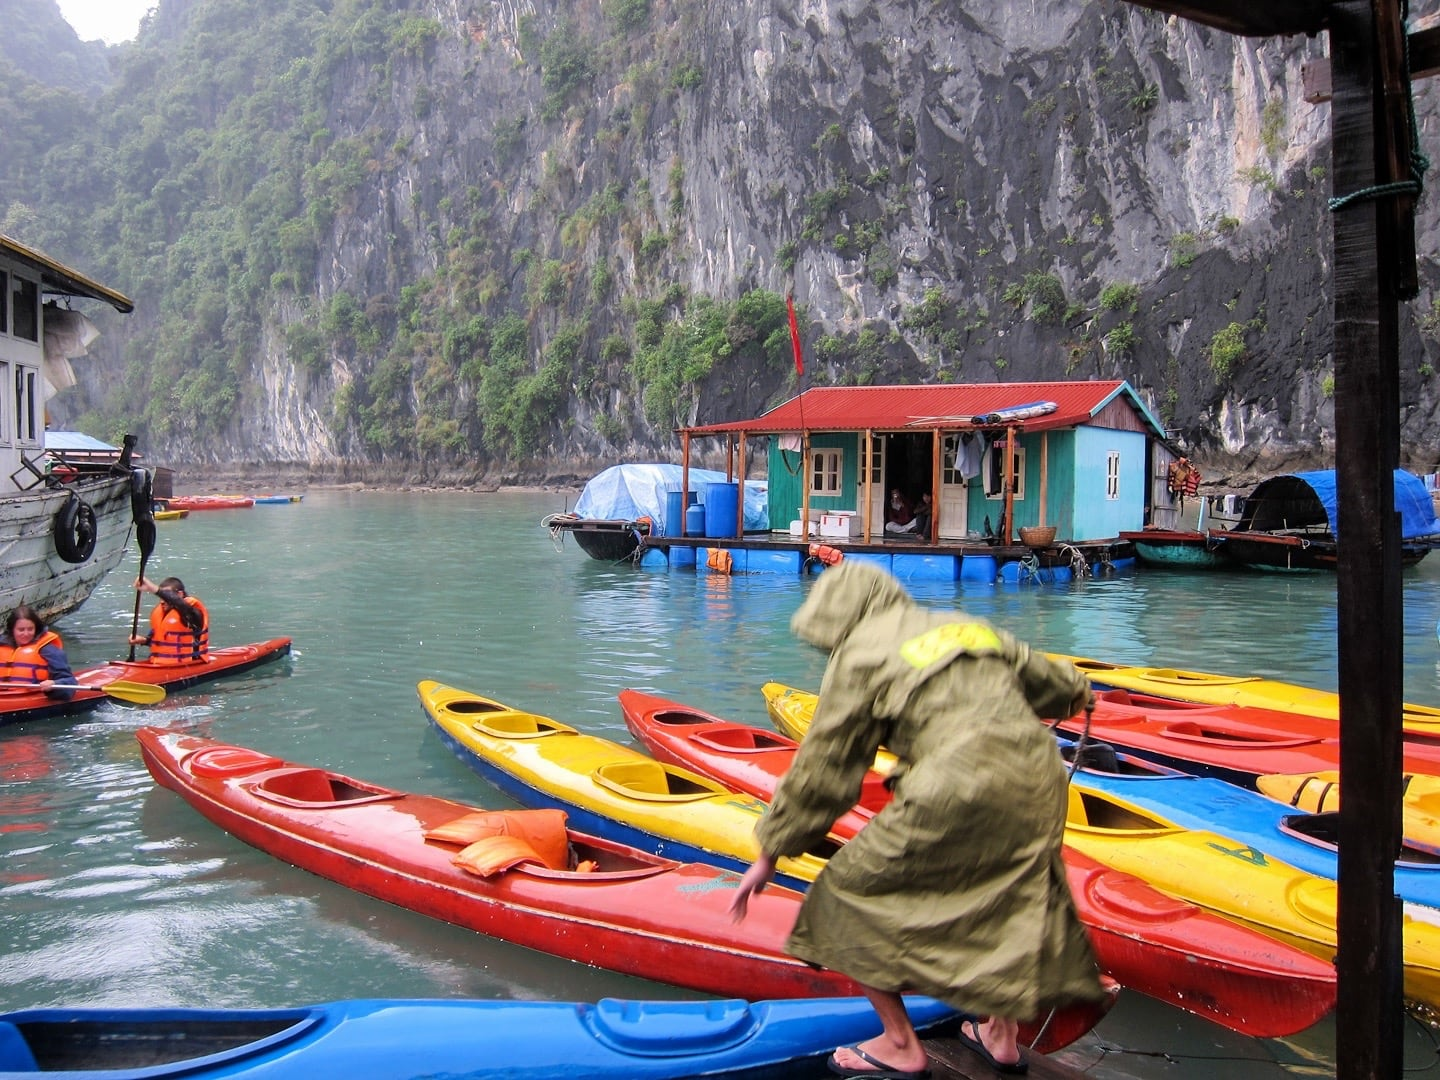 halong bay 3 day cruise kayaking